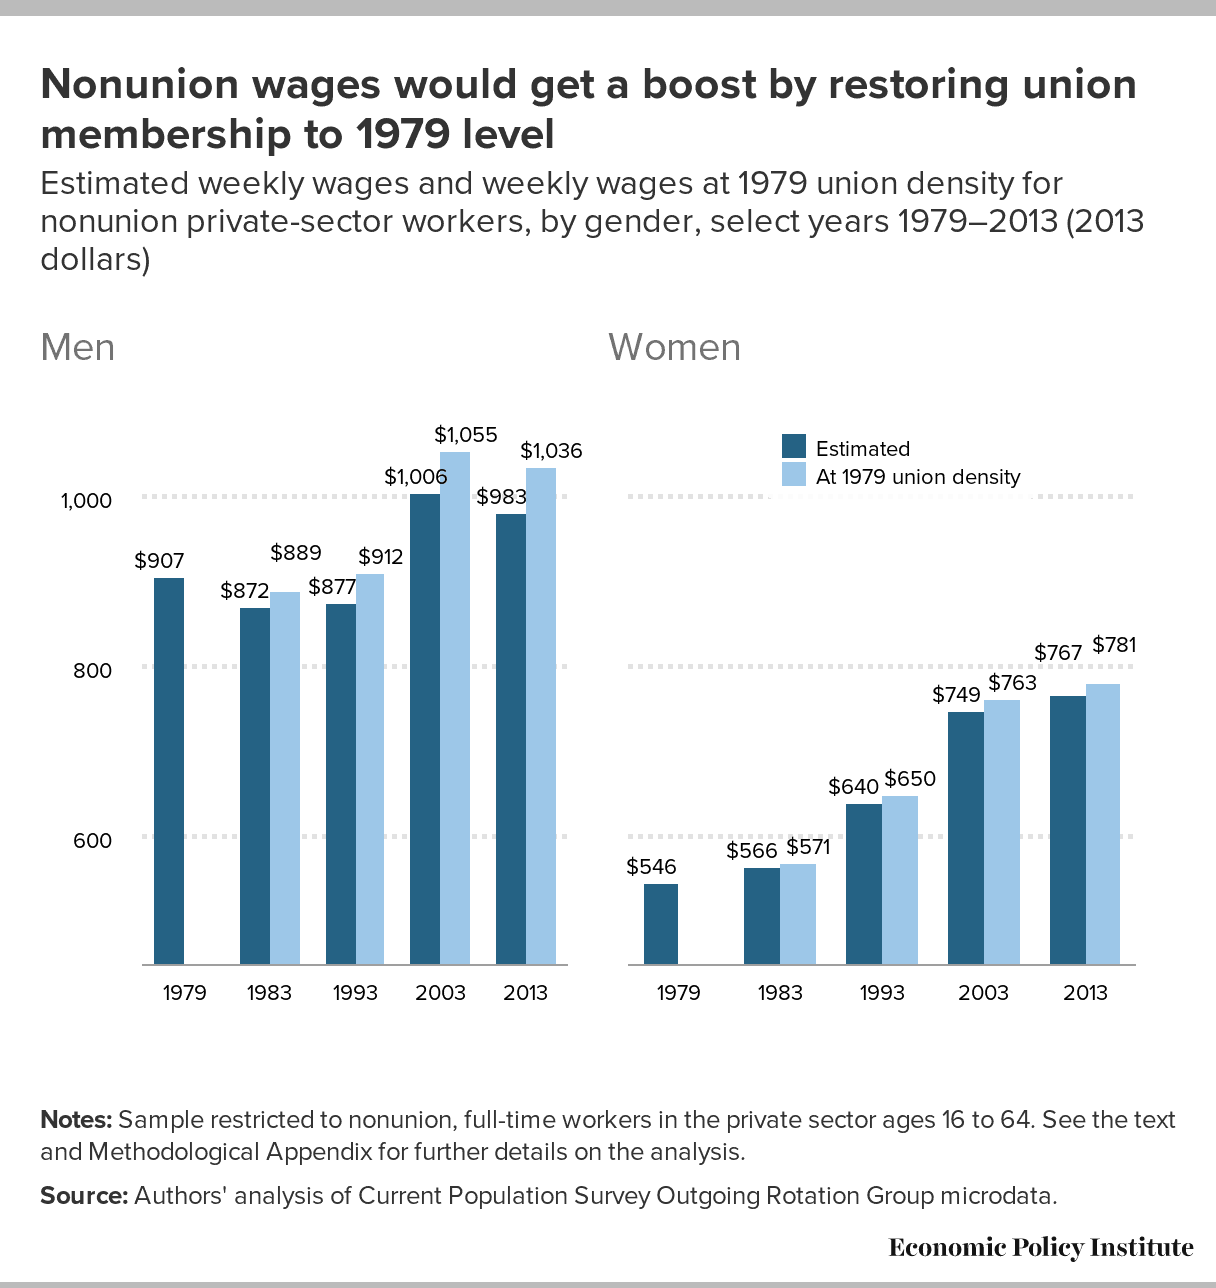 process for a labor union to enter a nonunion company Labor agreement provision requiring, as a condition of employment, that each nonunion member of a bargaining unit pay the union the equivalent of membership dues as a service charge in return for the union acting as the bargaining agent.